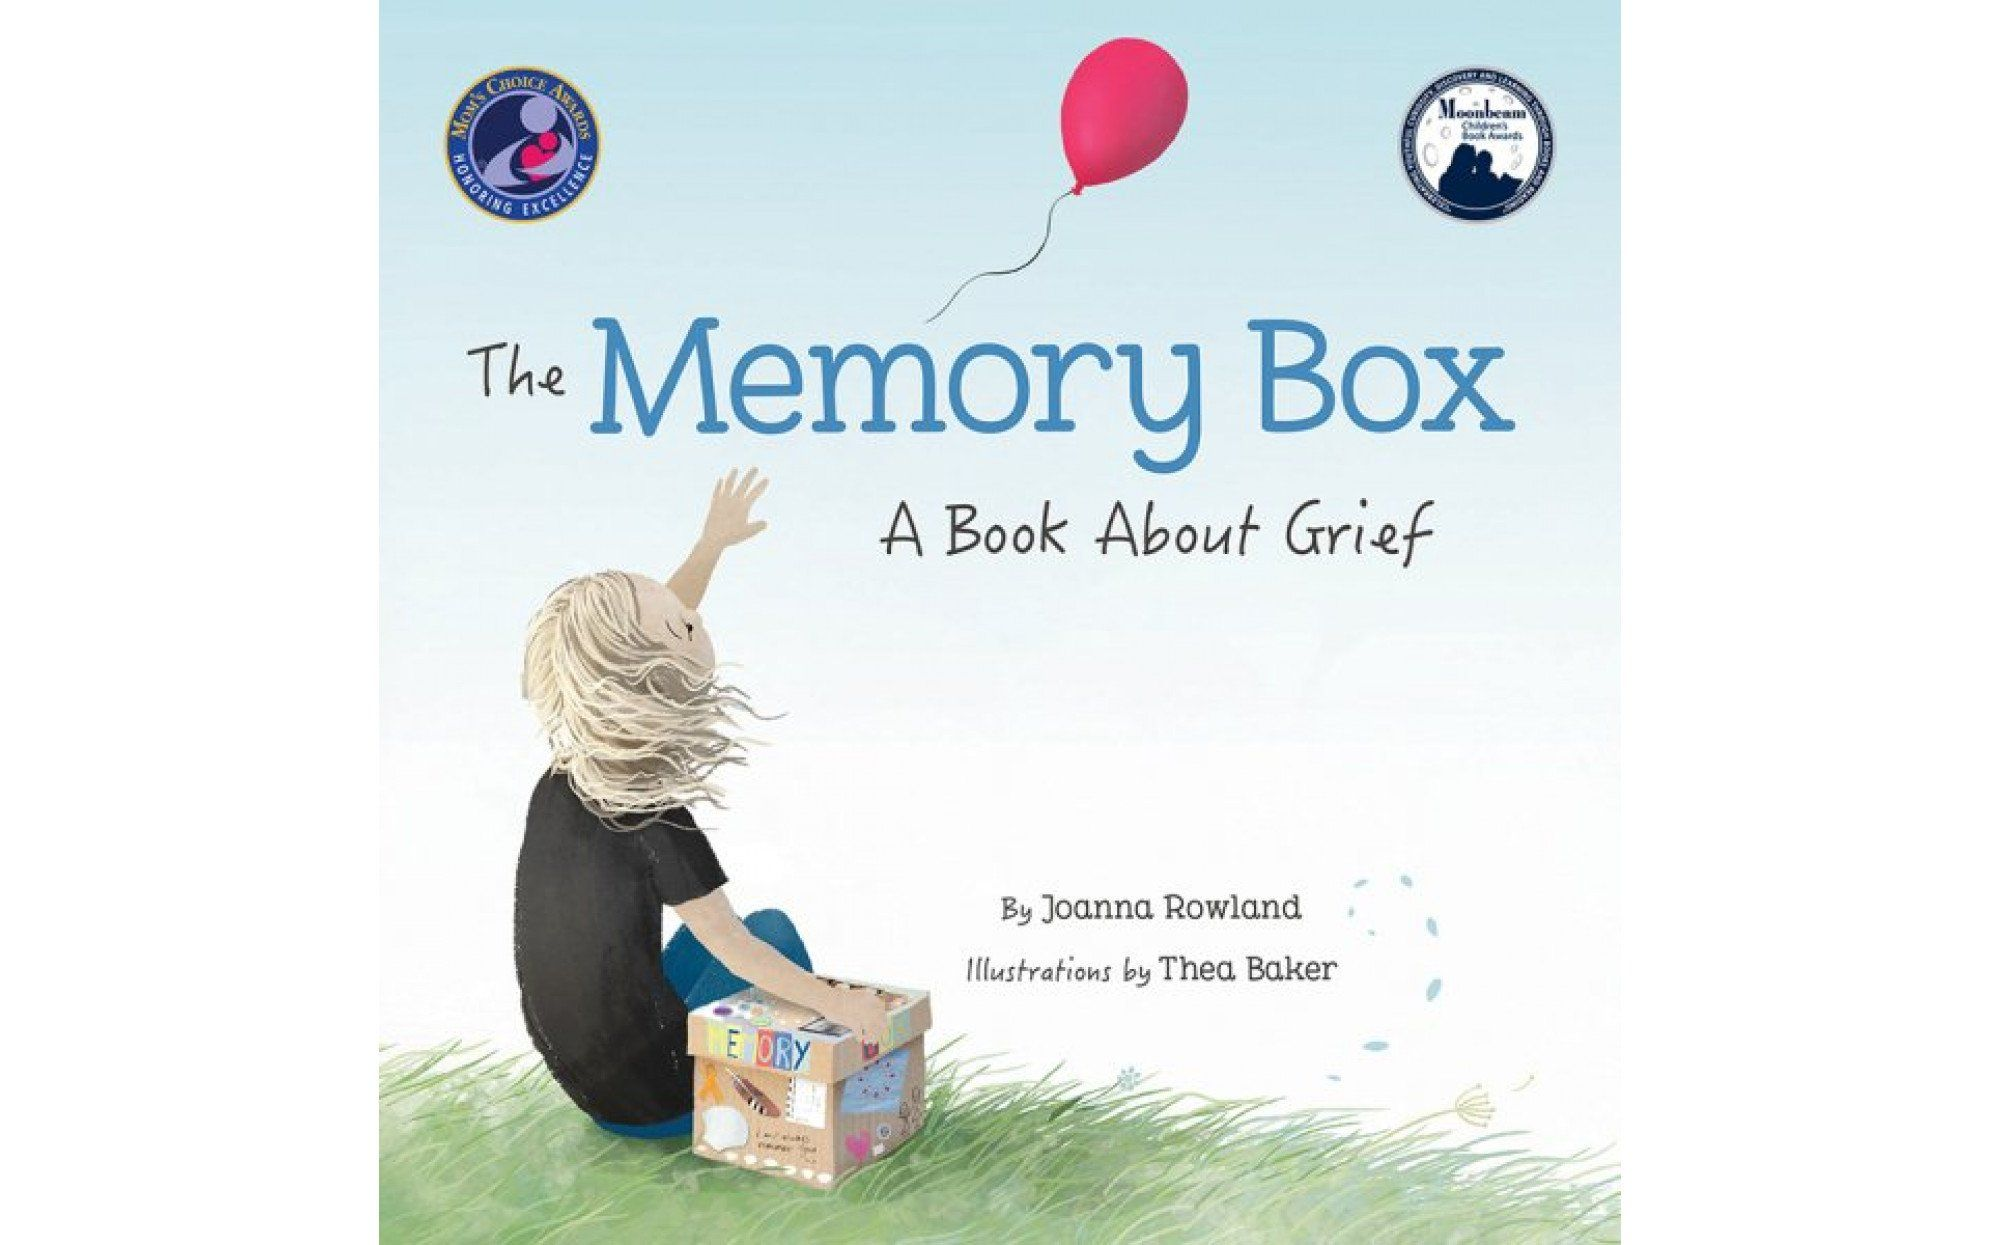 The Memory Box A Book About Grief Grief, Memories